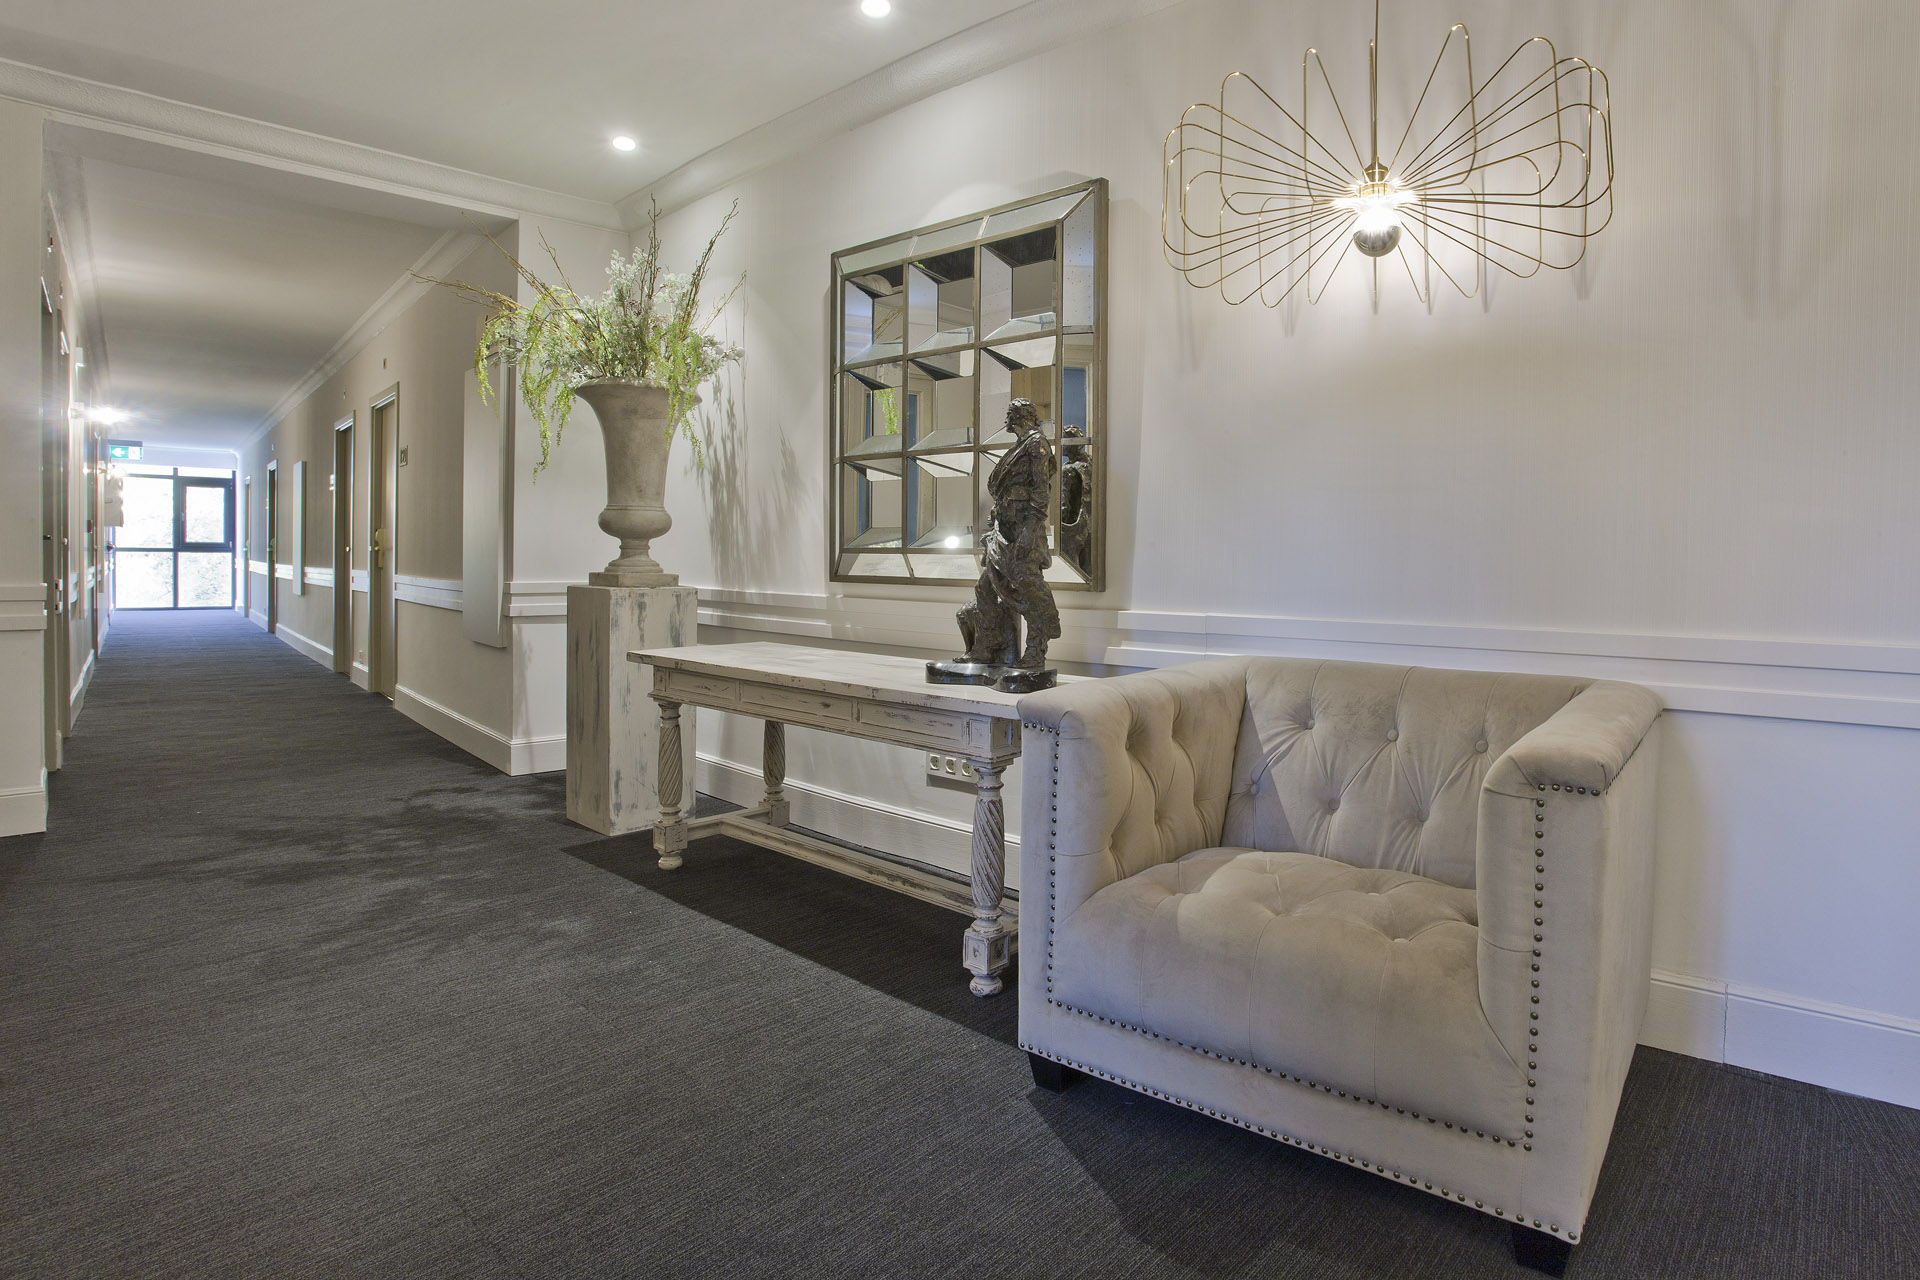 THREE KINGS HOTEL LUXE**** – Decostudio | Projects & Construction